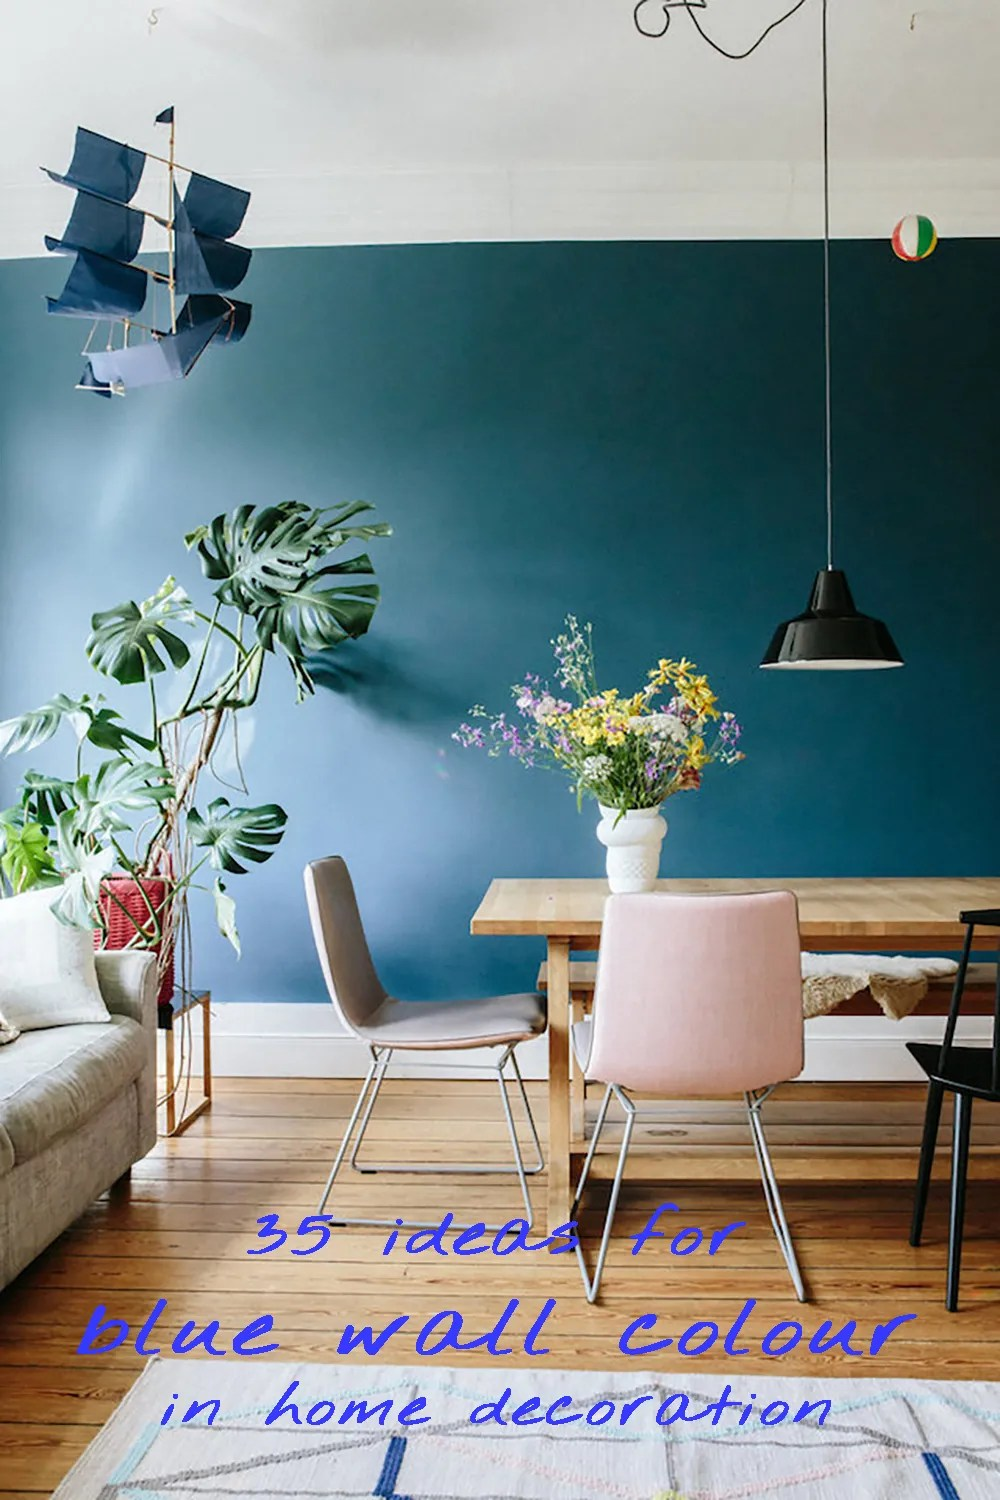 35 ideas for blue wall colour in home decoration | Aliz's Wonderland